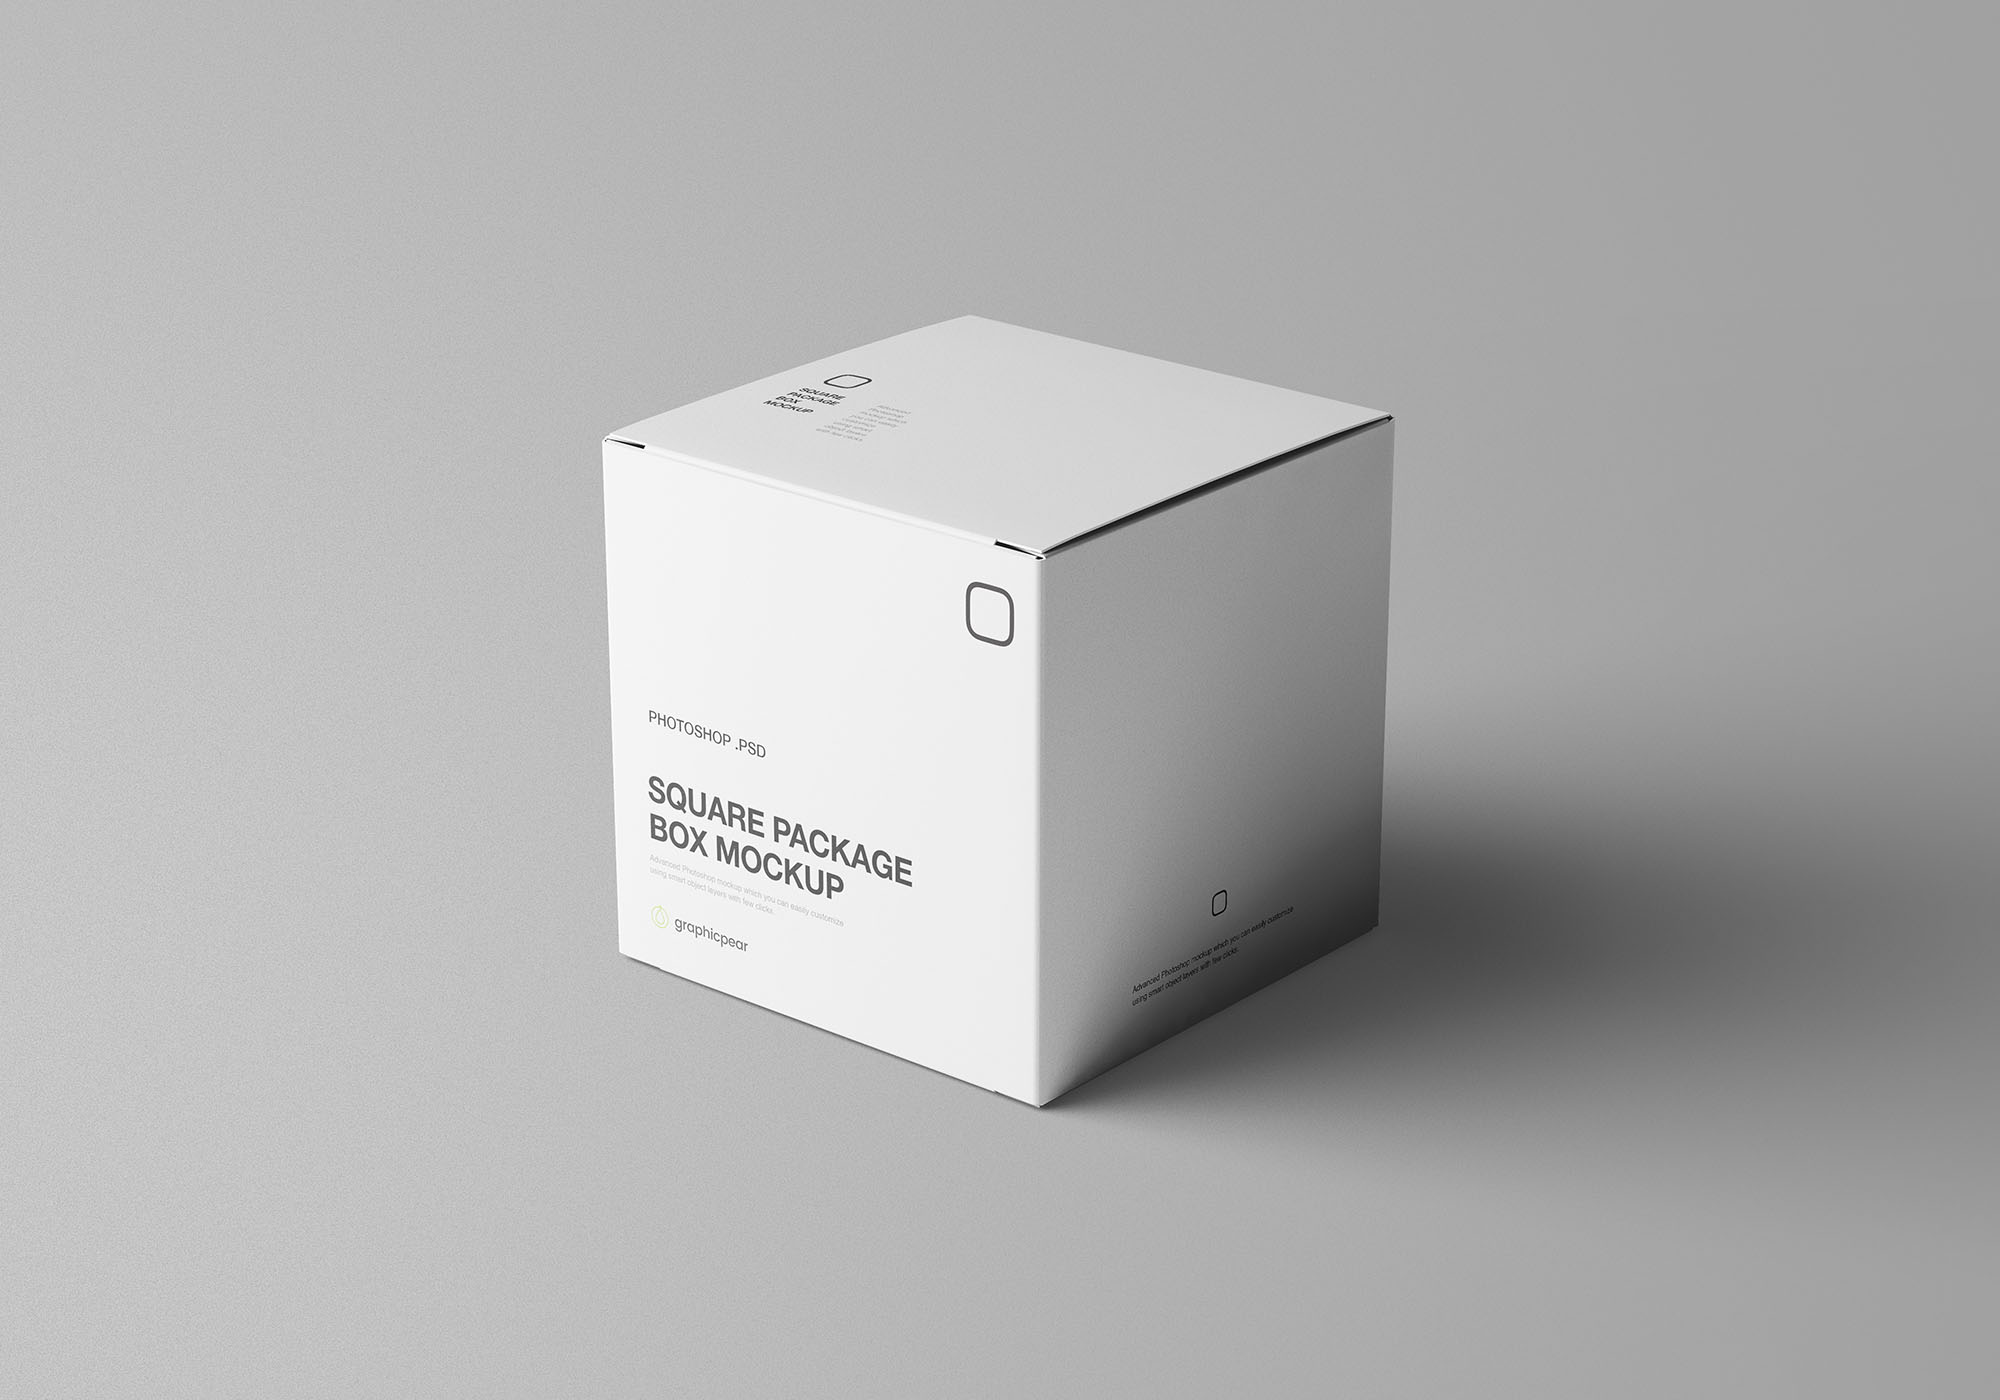 Square Package Box Mockup 2